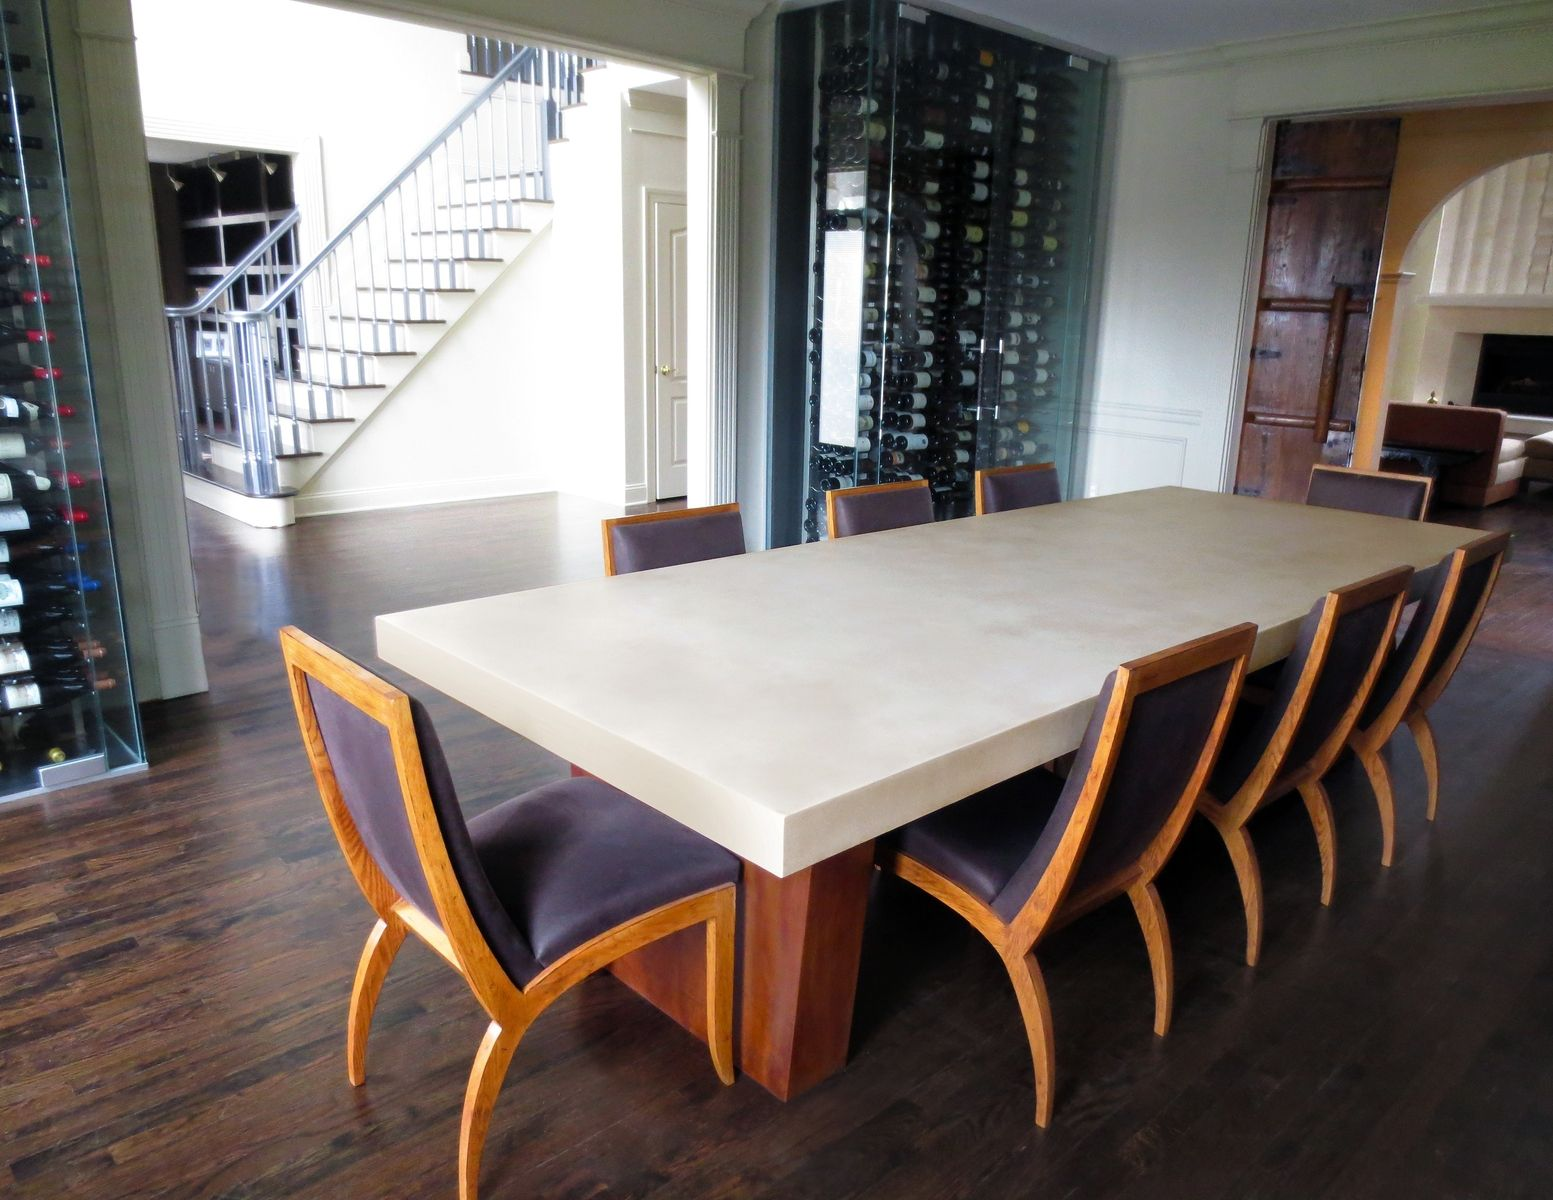 Custom Concrete Dining Room Table By Trueform Concrete - Concrete dining room table